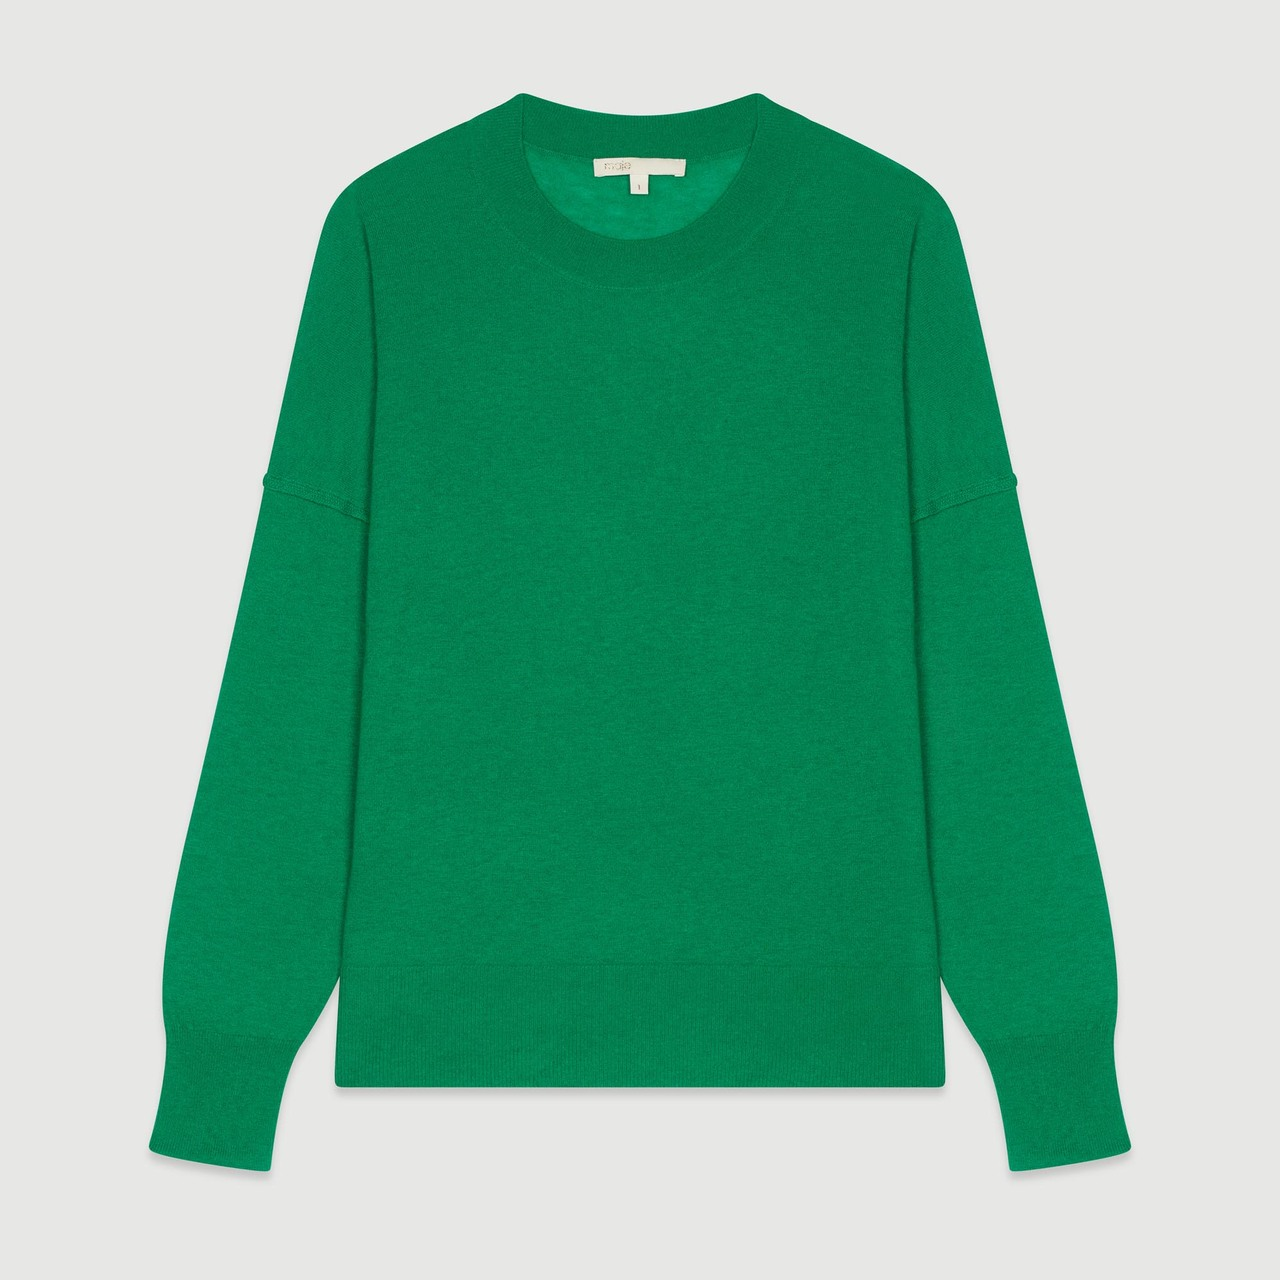 Oversize Sweater In Cashmere - Green